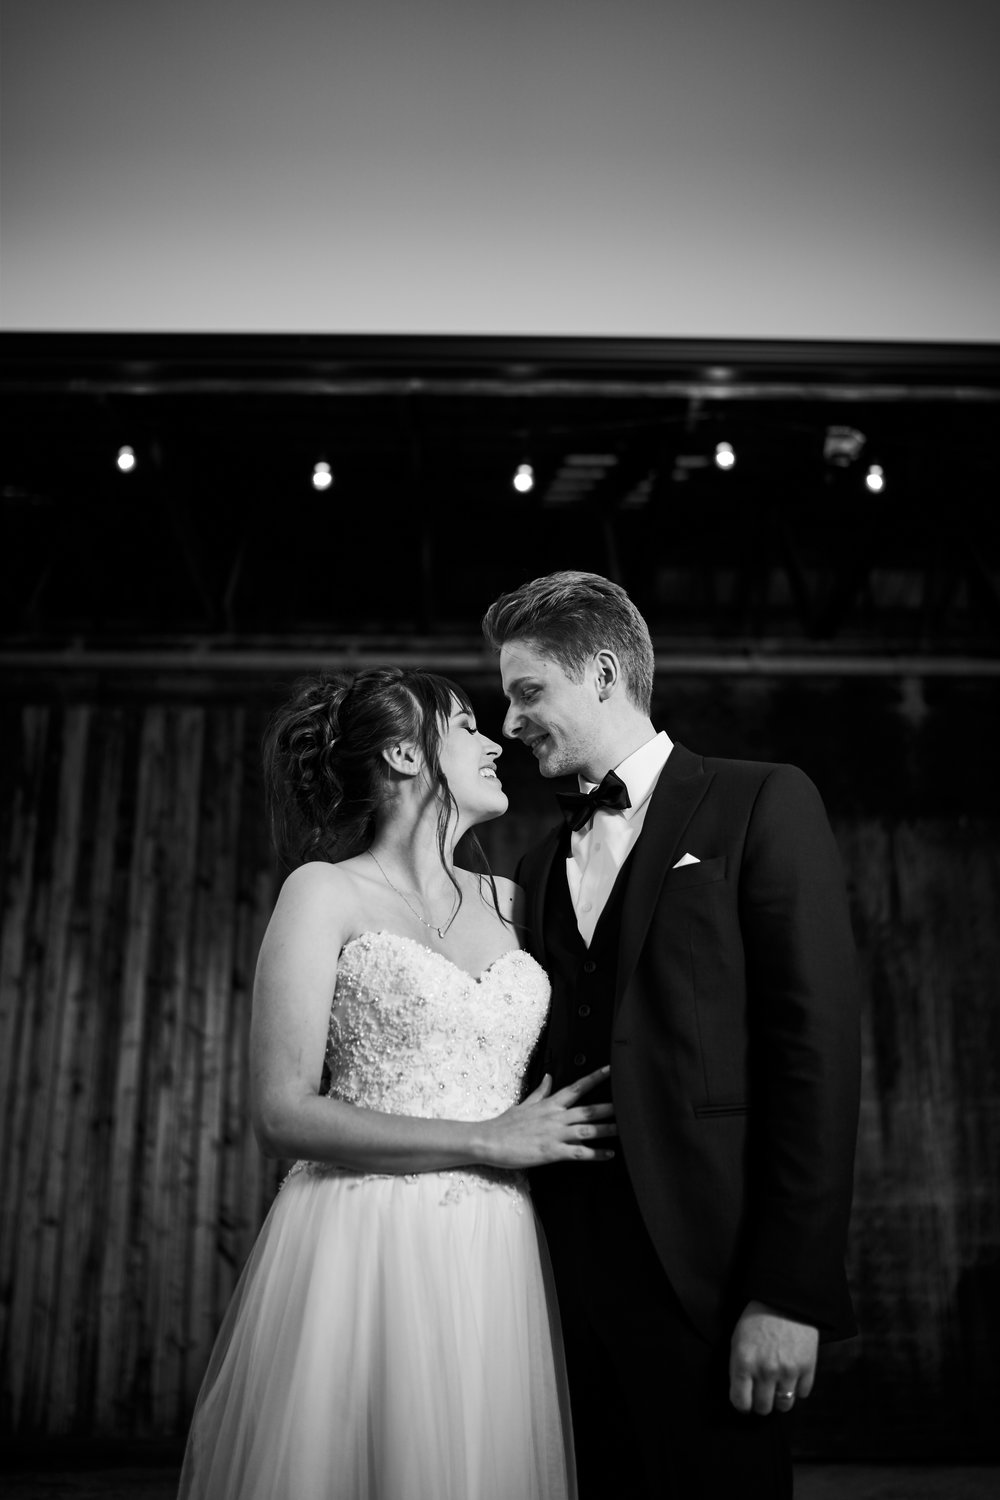 Marcia & Johannes' Wedding - 704.jpg